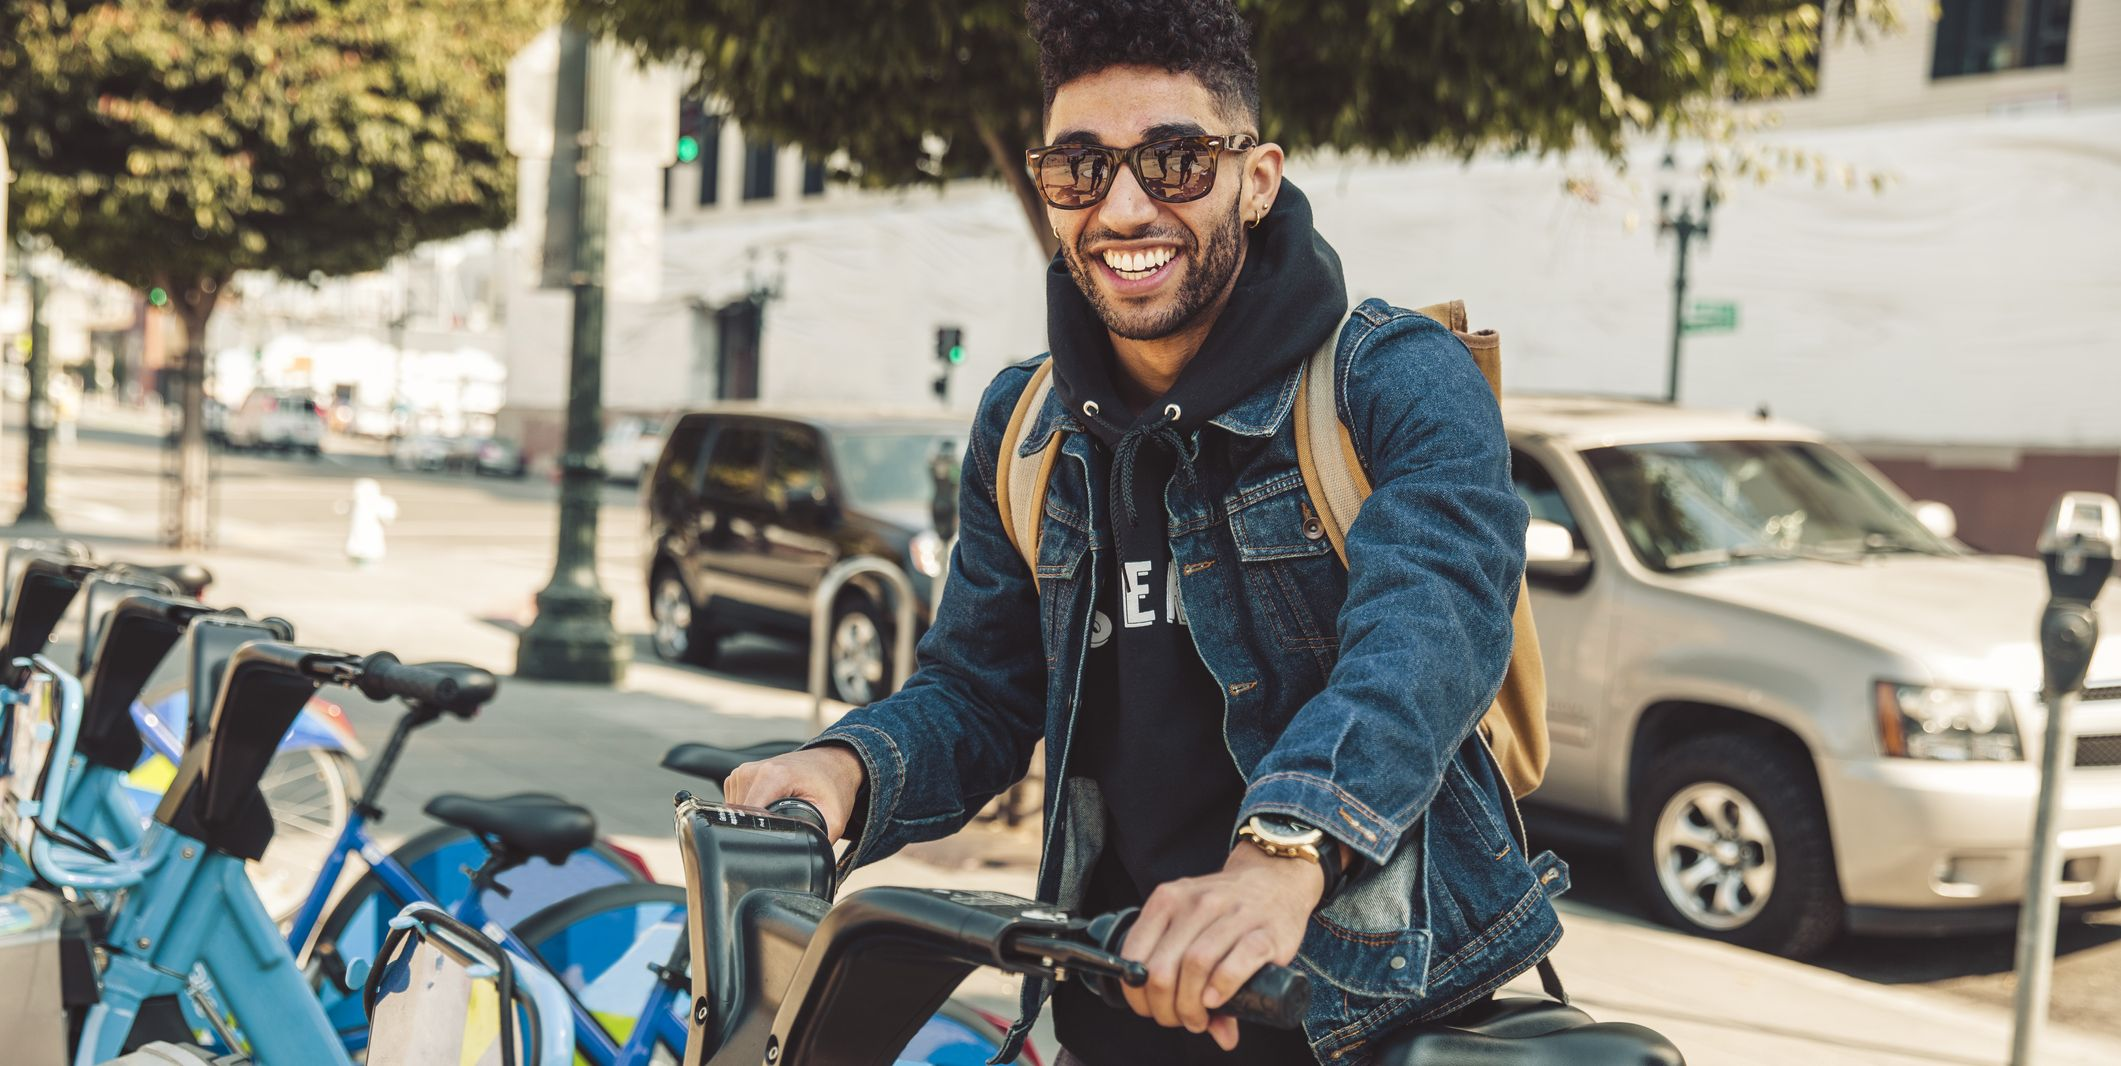 Stylish young man on the street with rental bike